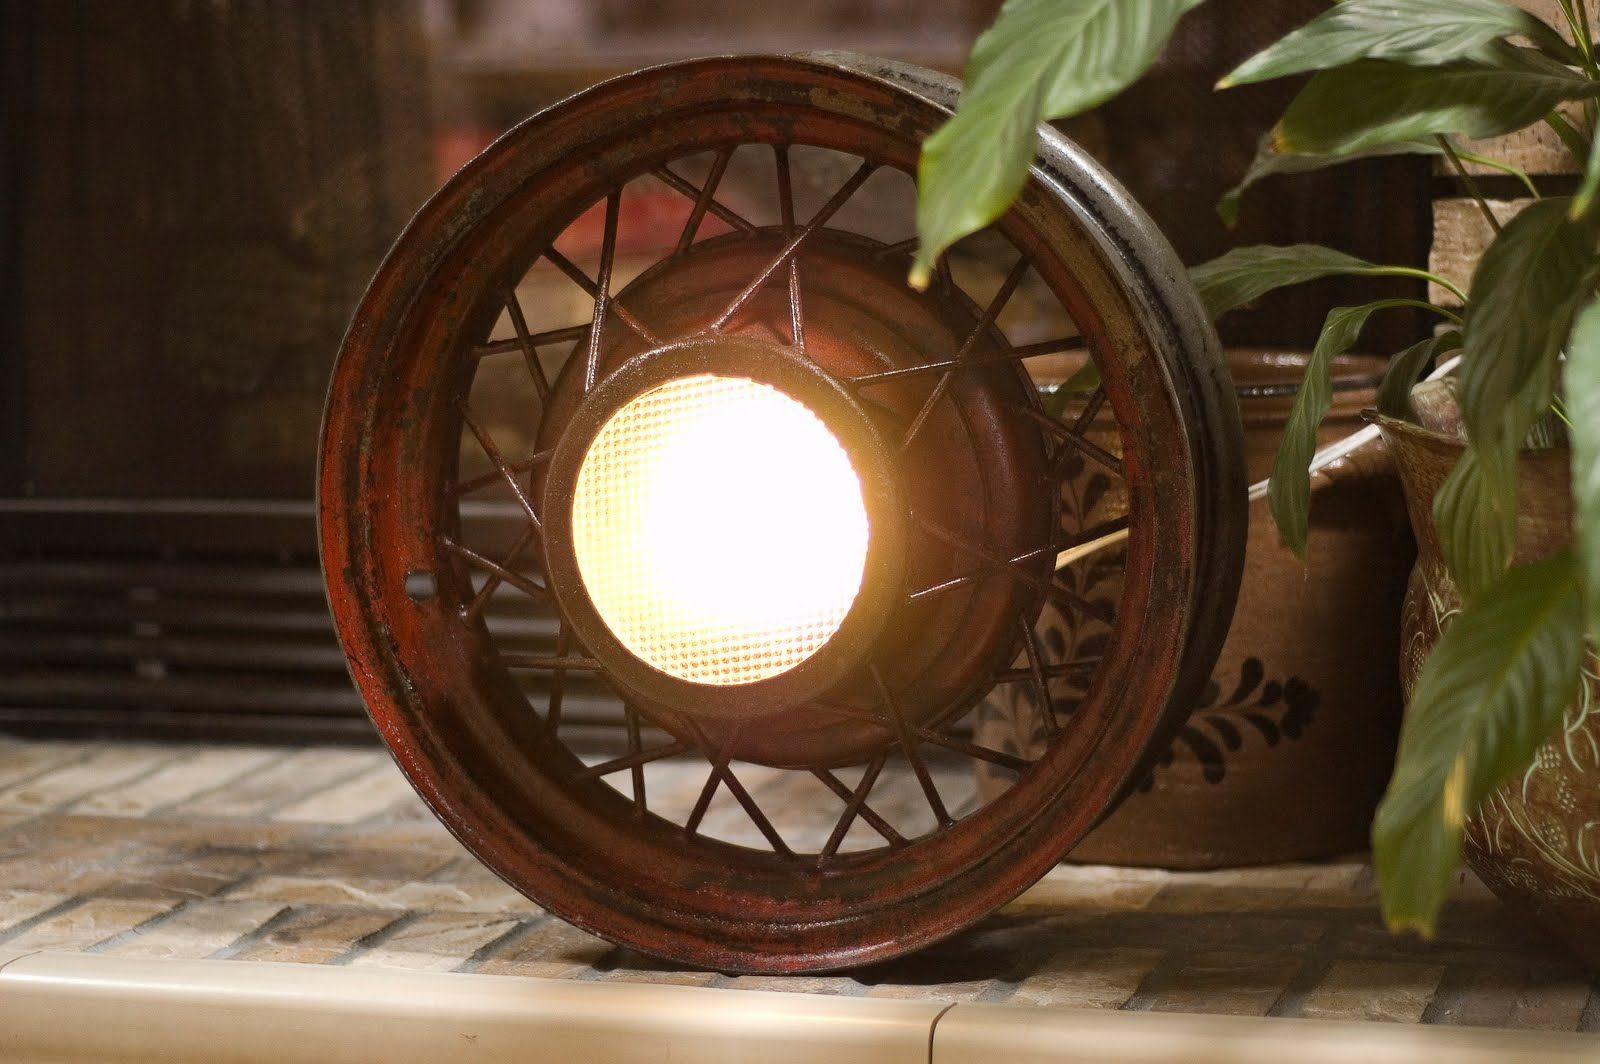 Frankly Speaking Too: John's Project: Antique Wheel Light